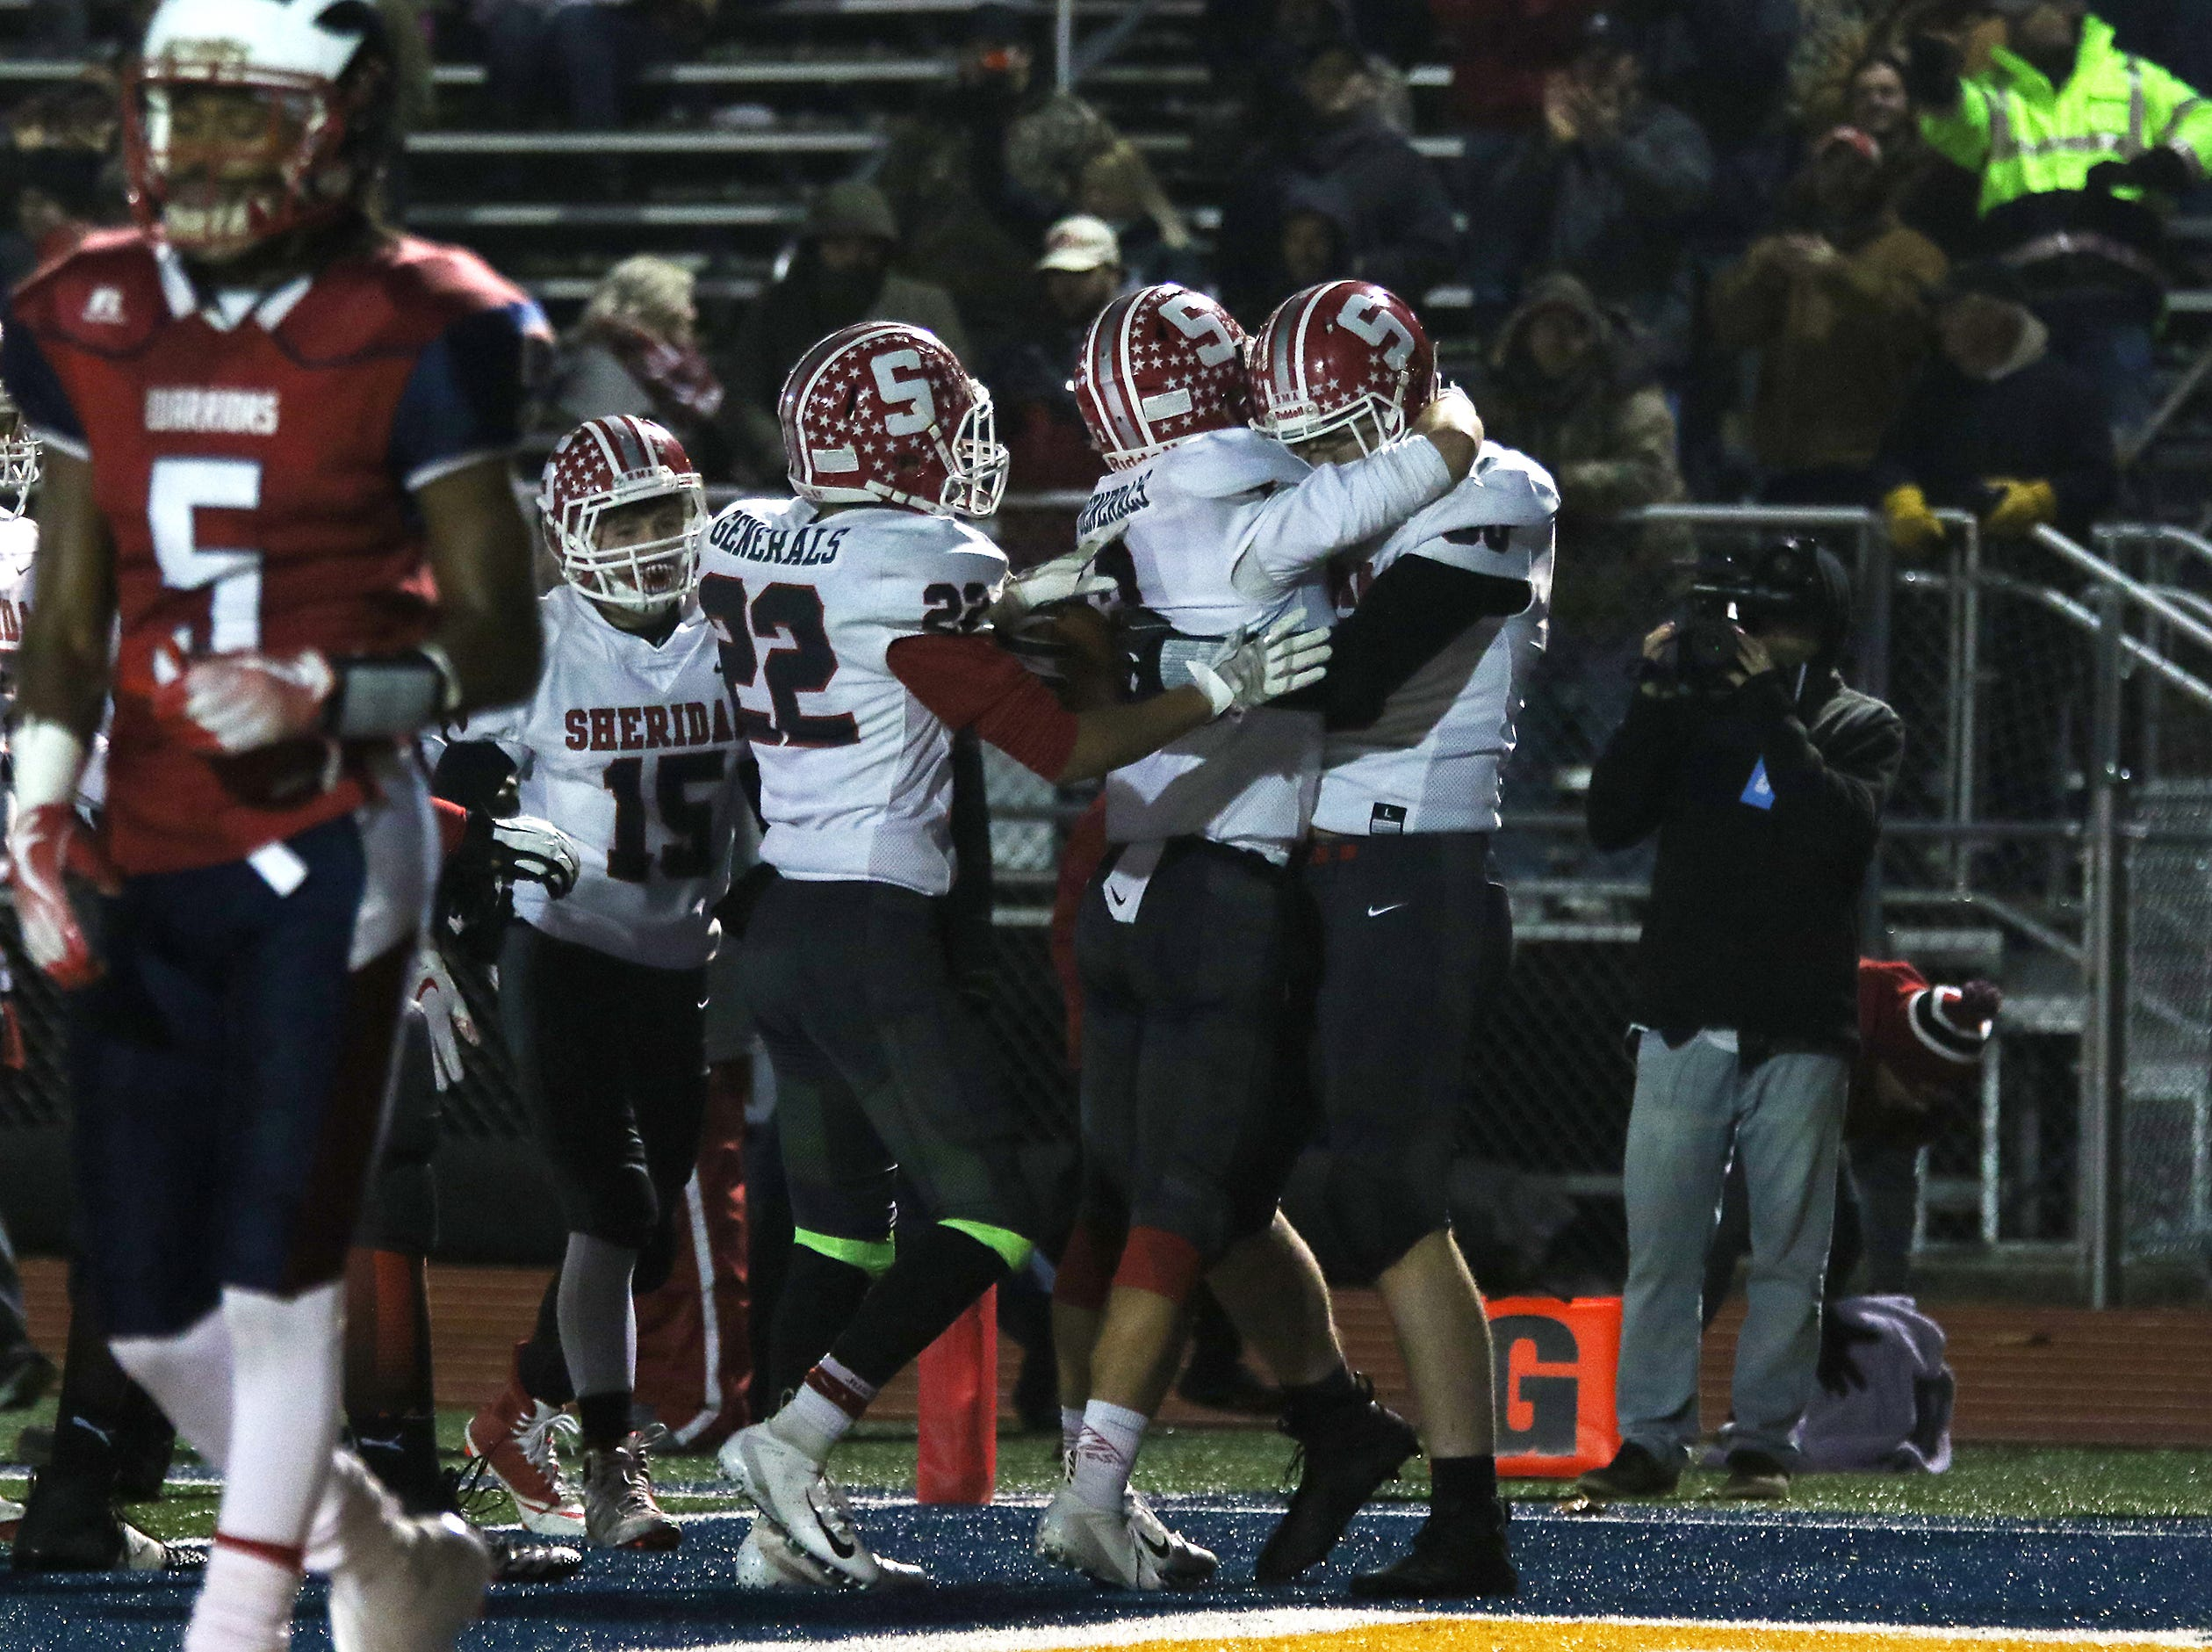 Sheridan's Adam Boyle gets a hug from Ethan Heller after Boyle's touchdown catch against Eastmoor.